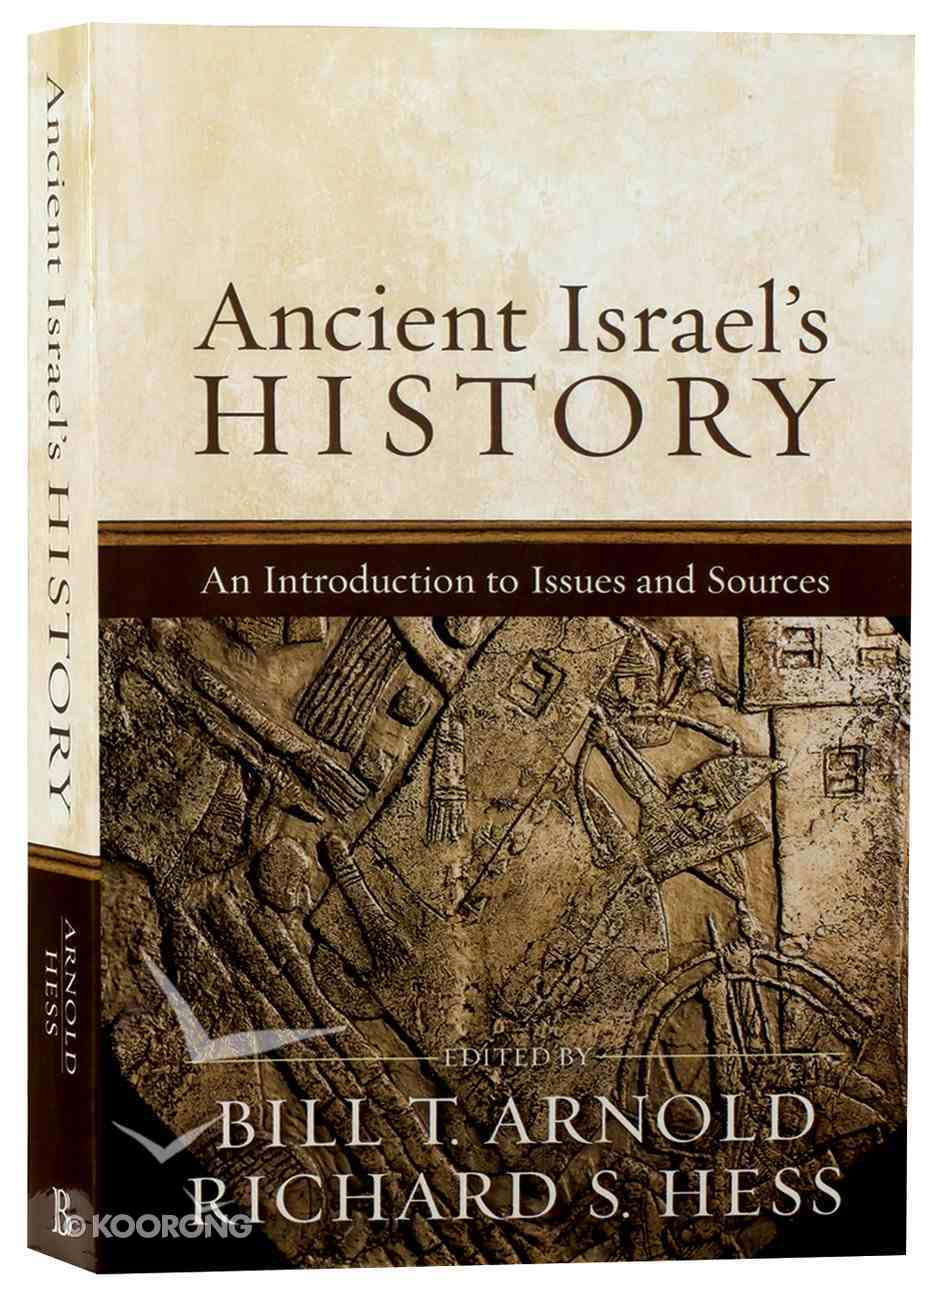 Ancient Israel's History: An Introduction to Issues and Sources Paperback